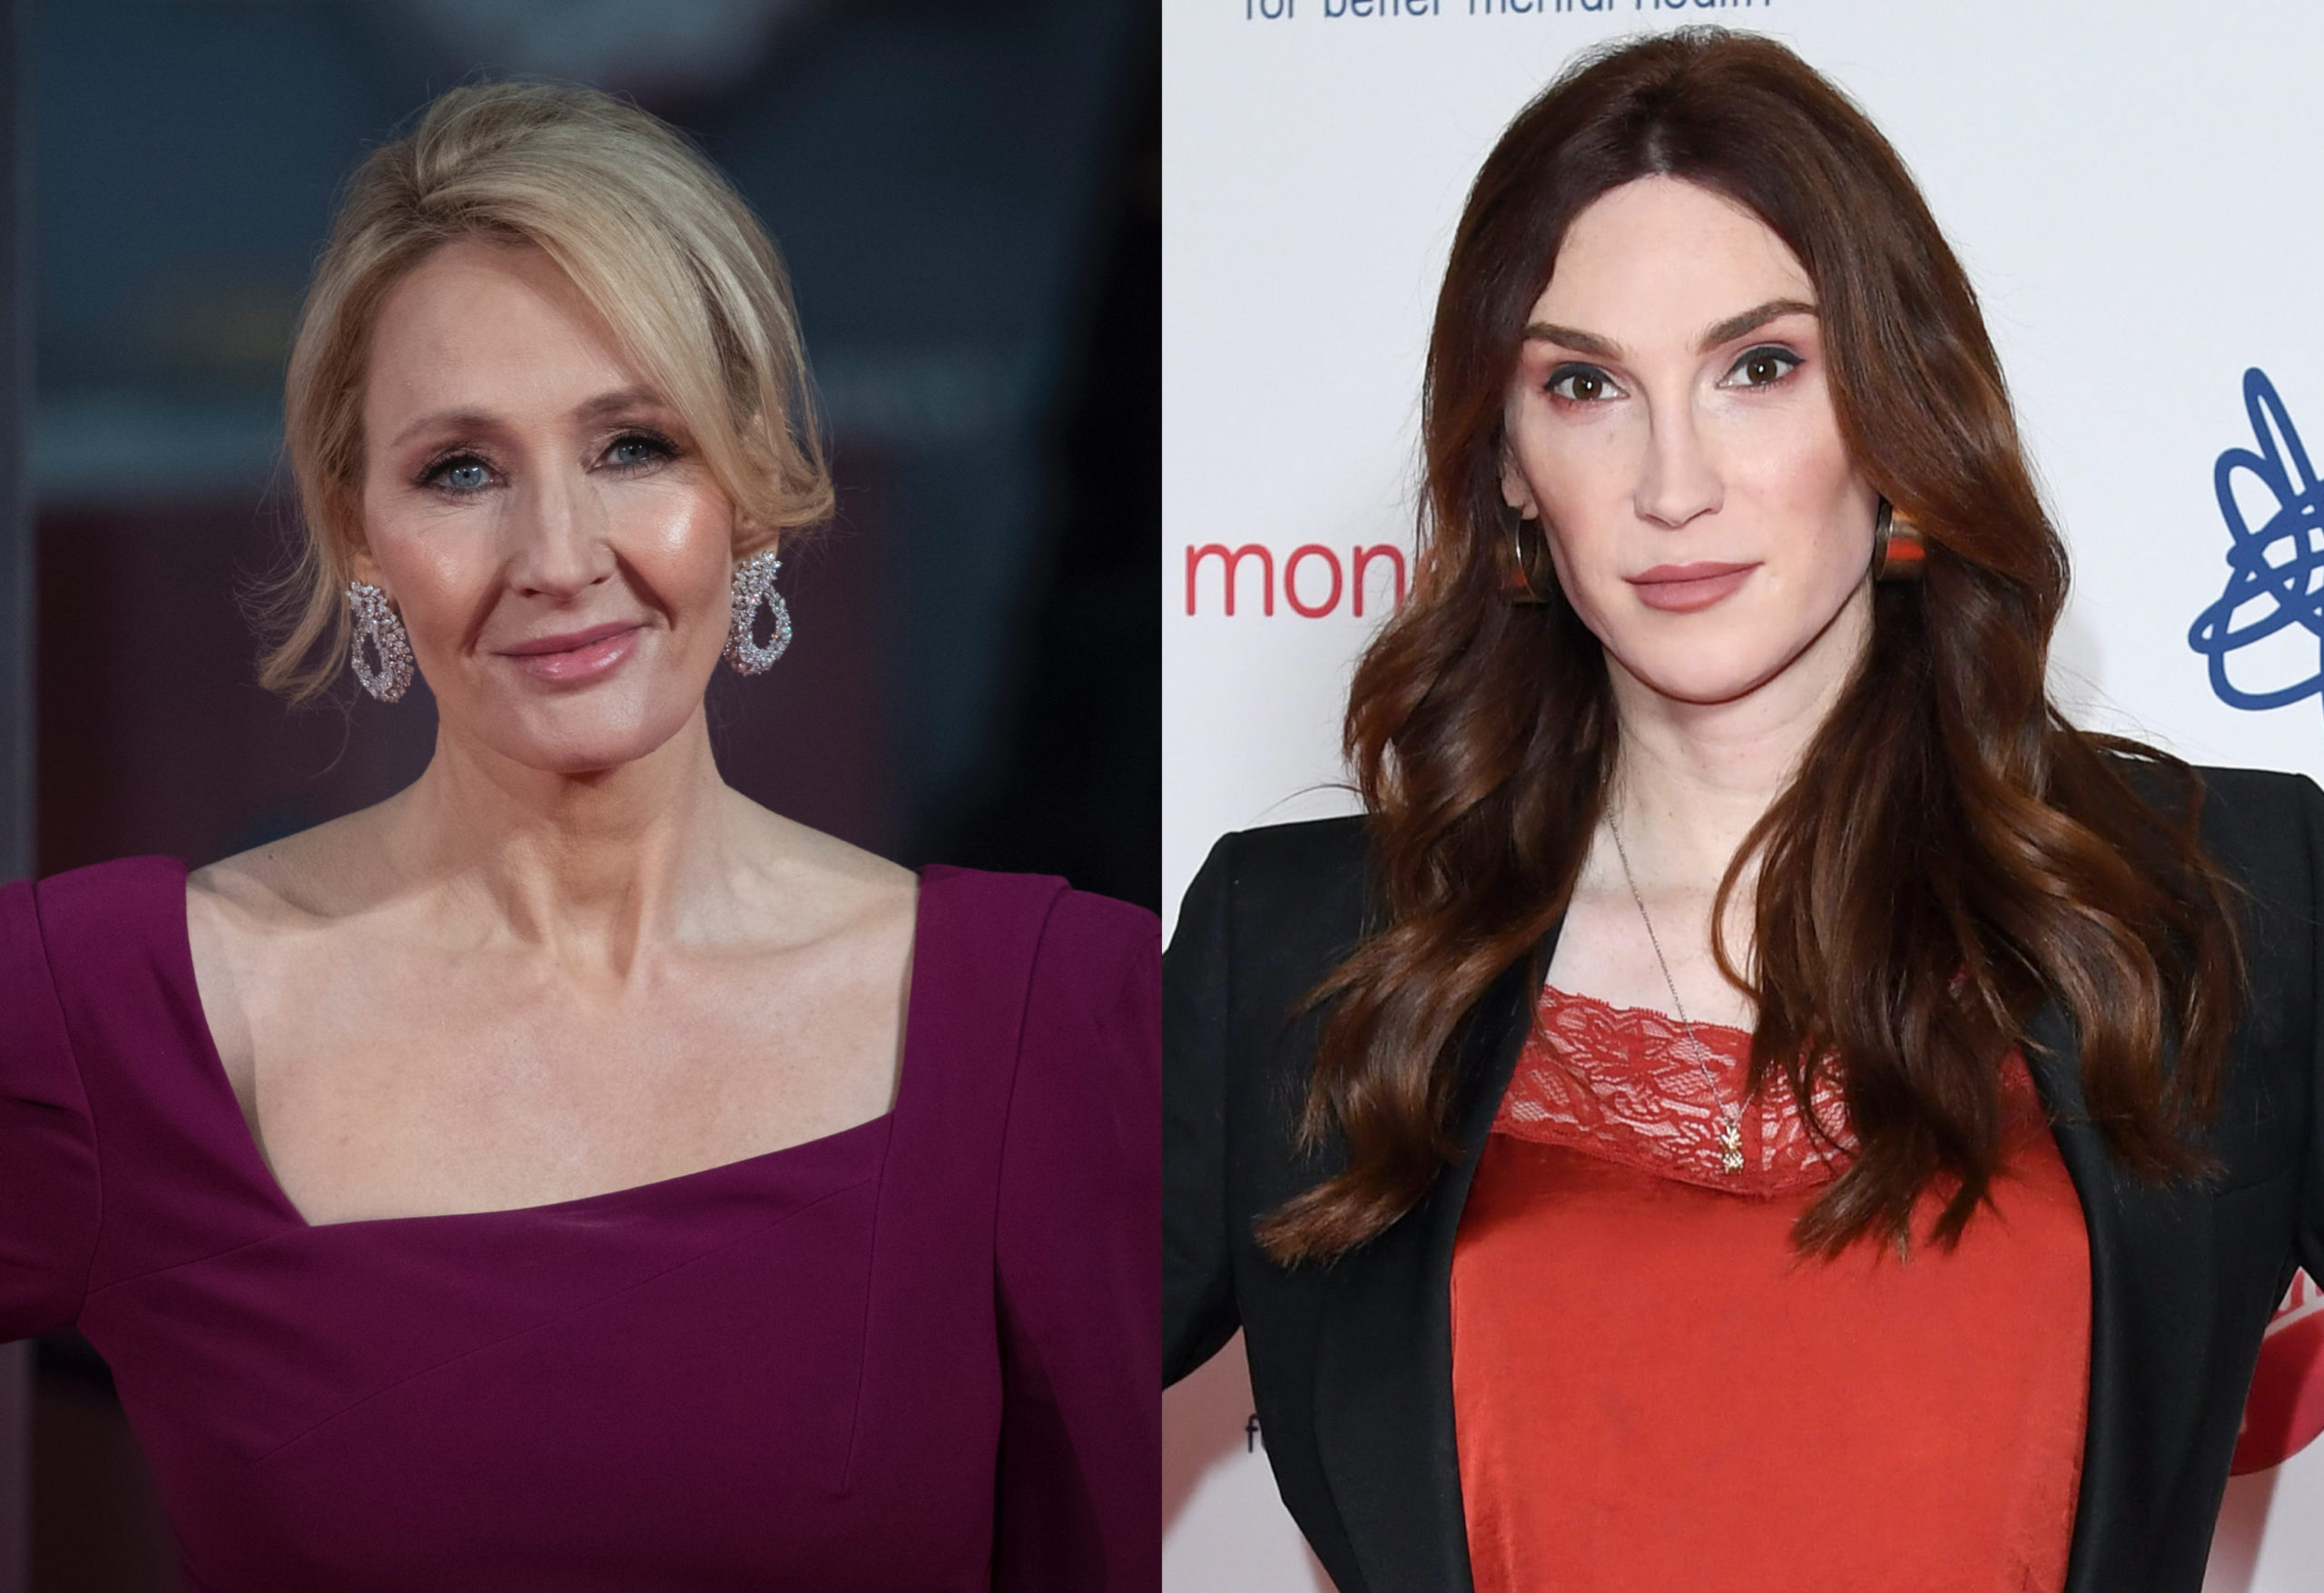 White, cis billionaire JK Rowling sparked fury for her views on trans folk. So Juno Dawson decoded them to show just how anti-trans they are. (John Phillips/Getty Images/Karwai Tang/WireImage)